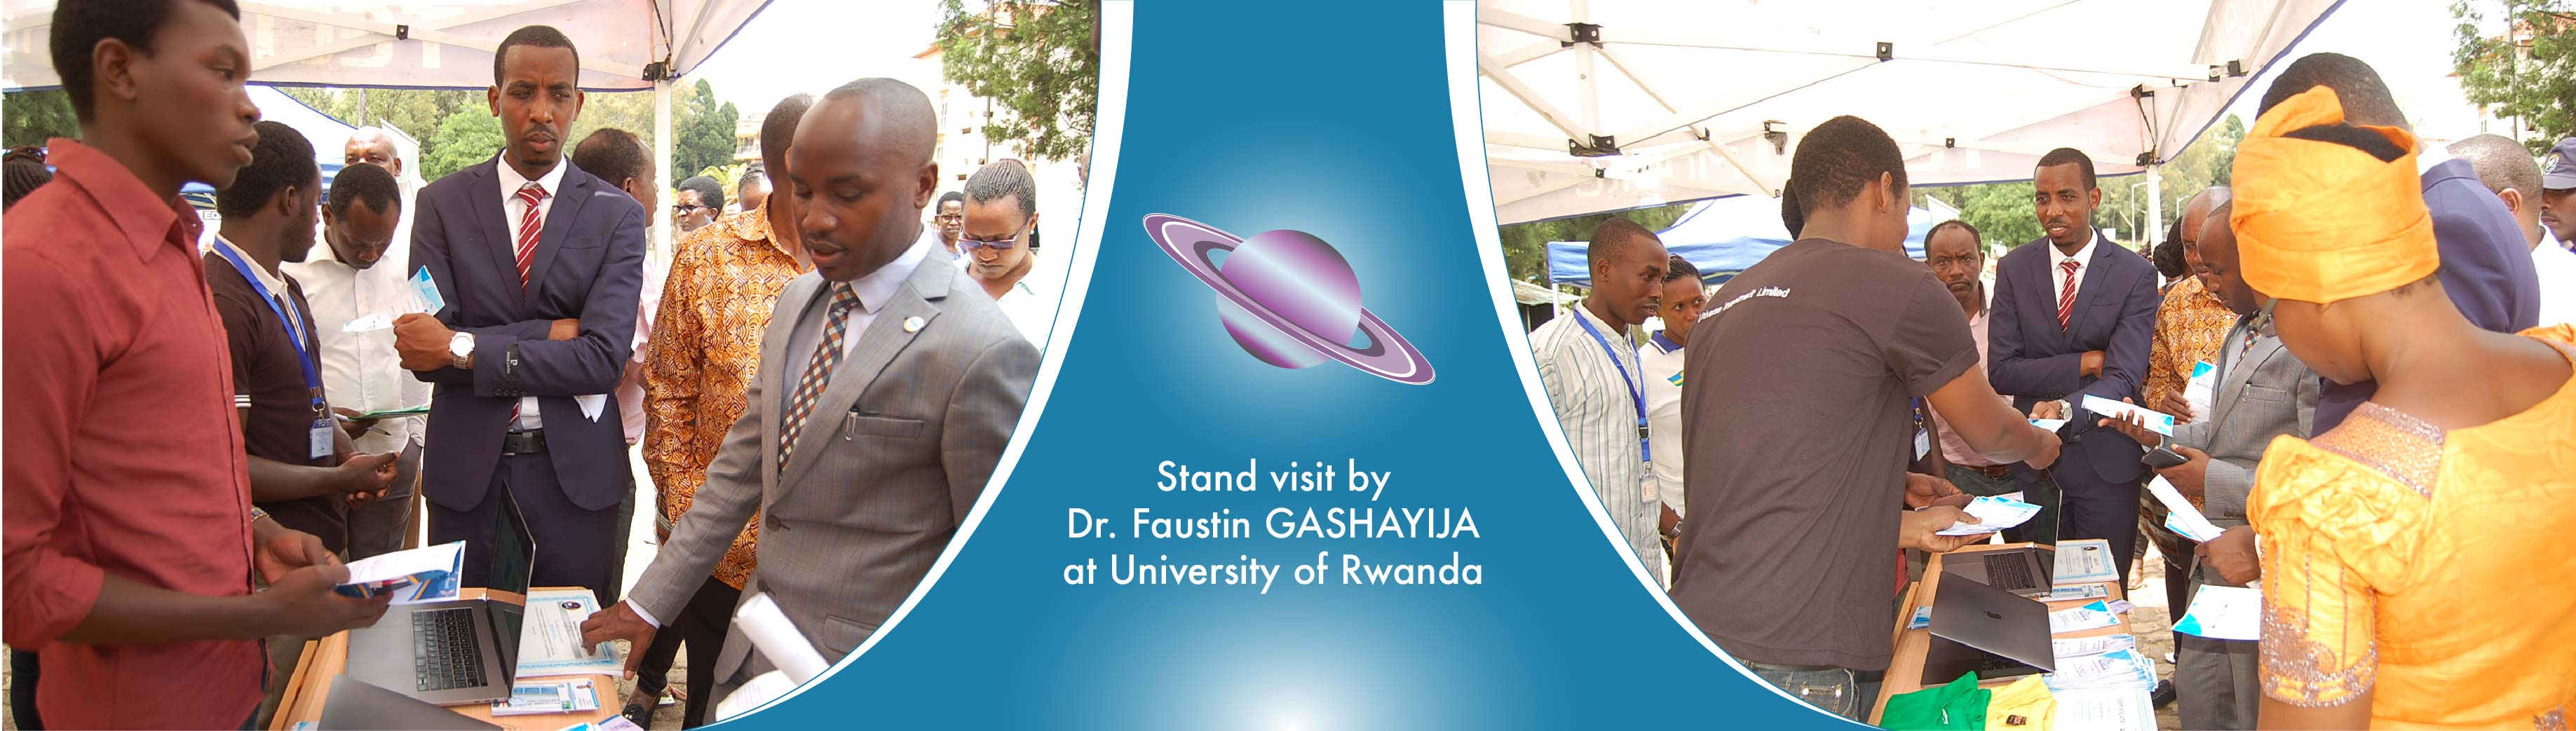 """Our stand at University of Rwanda&quot"